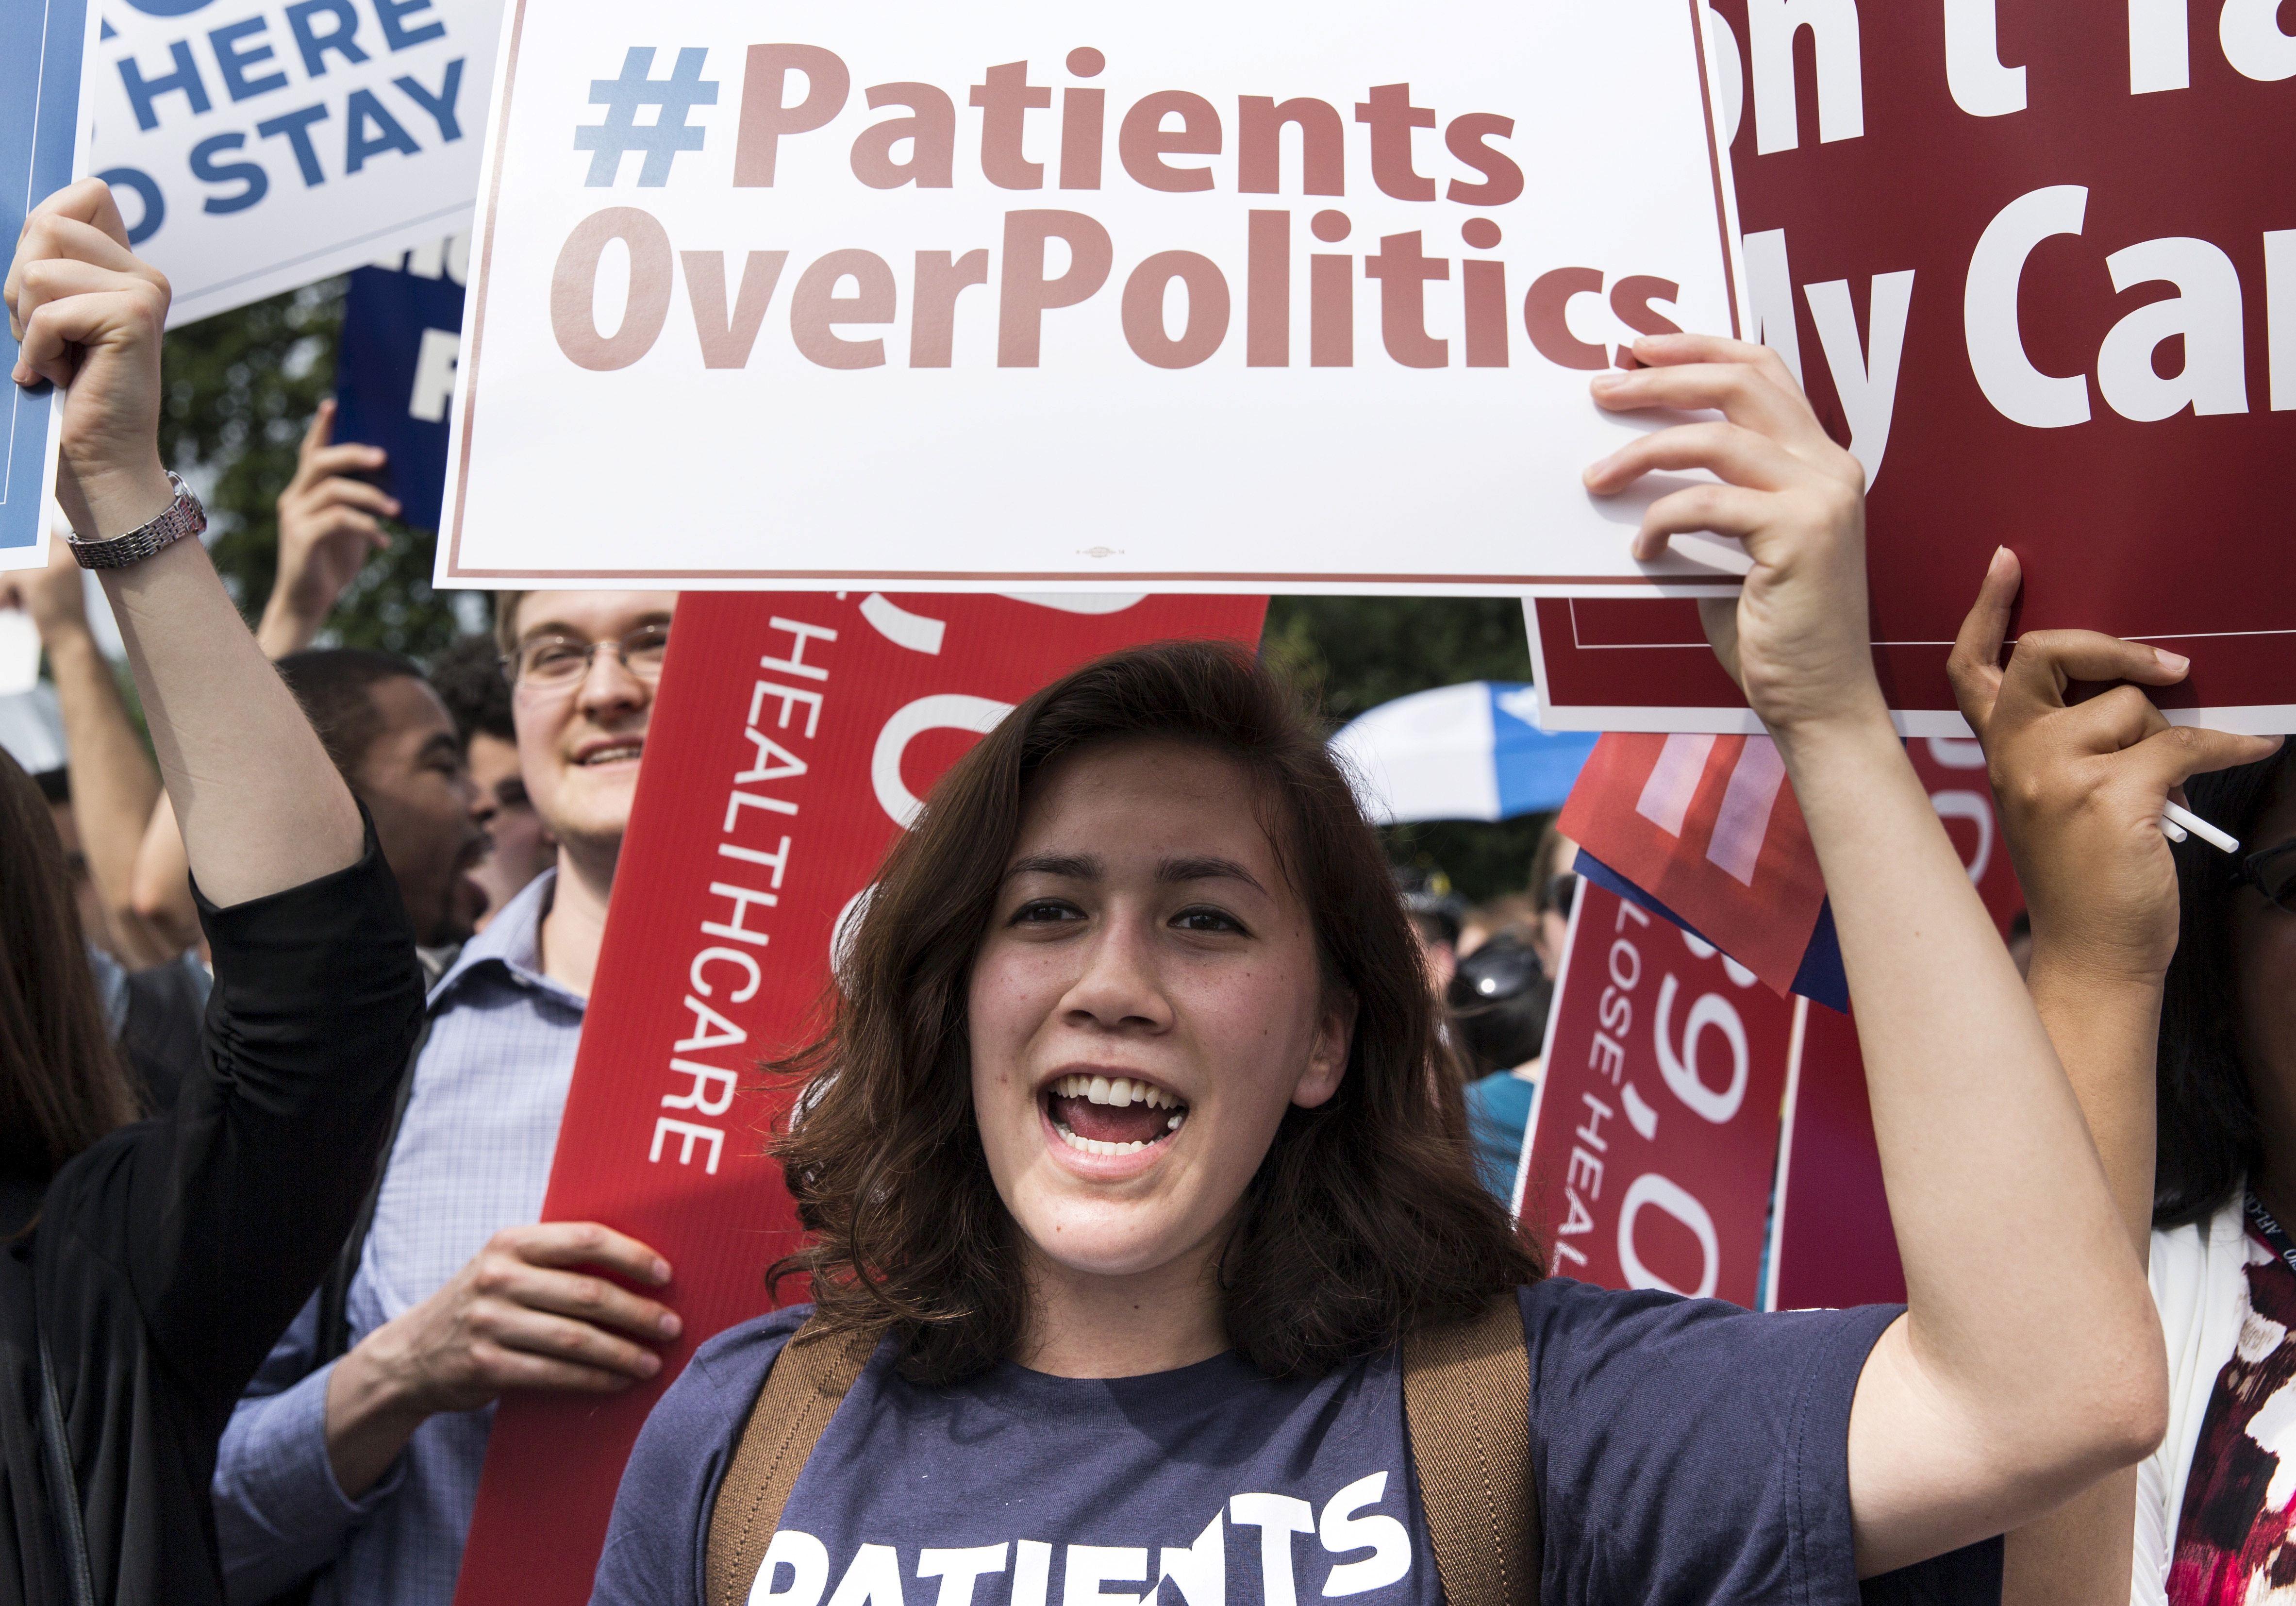 A supporter of the Affordable Care Act celebrates last week after the Supreme Court upheld the law in a 6-3 vote. The Court upheld the nationwide availability of tax subsidies that are crucial to the law's implementation.